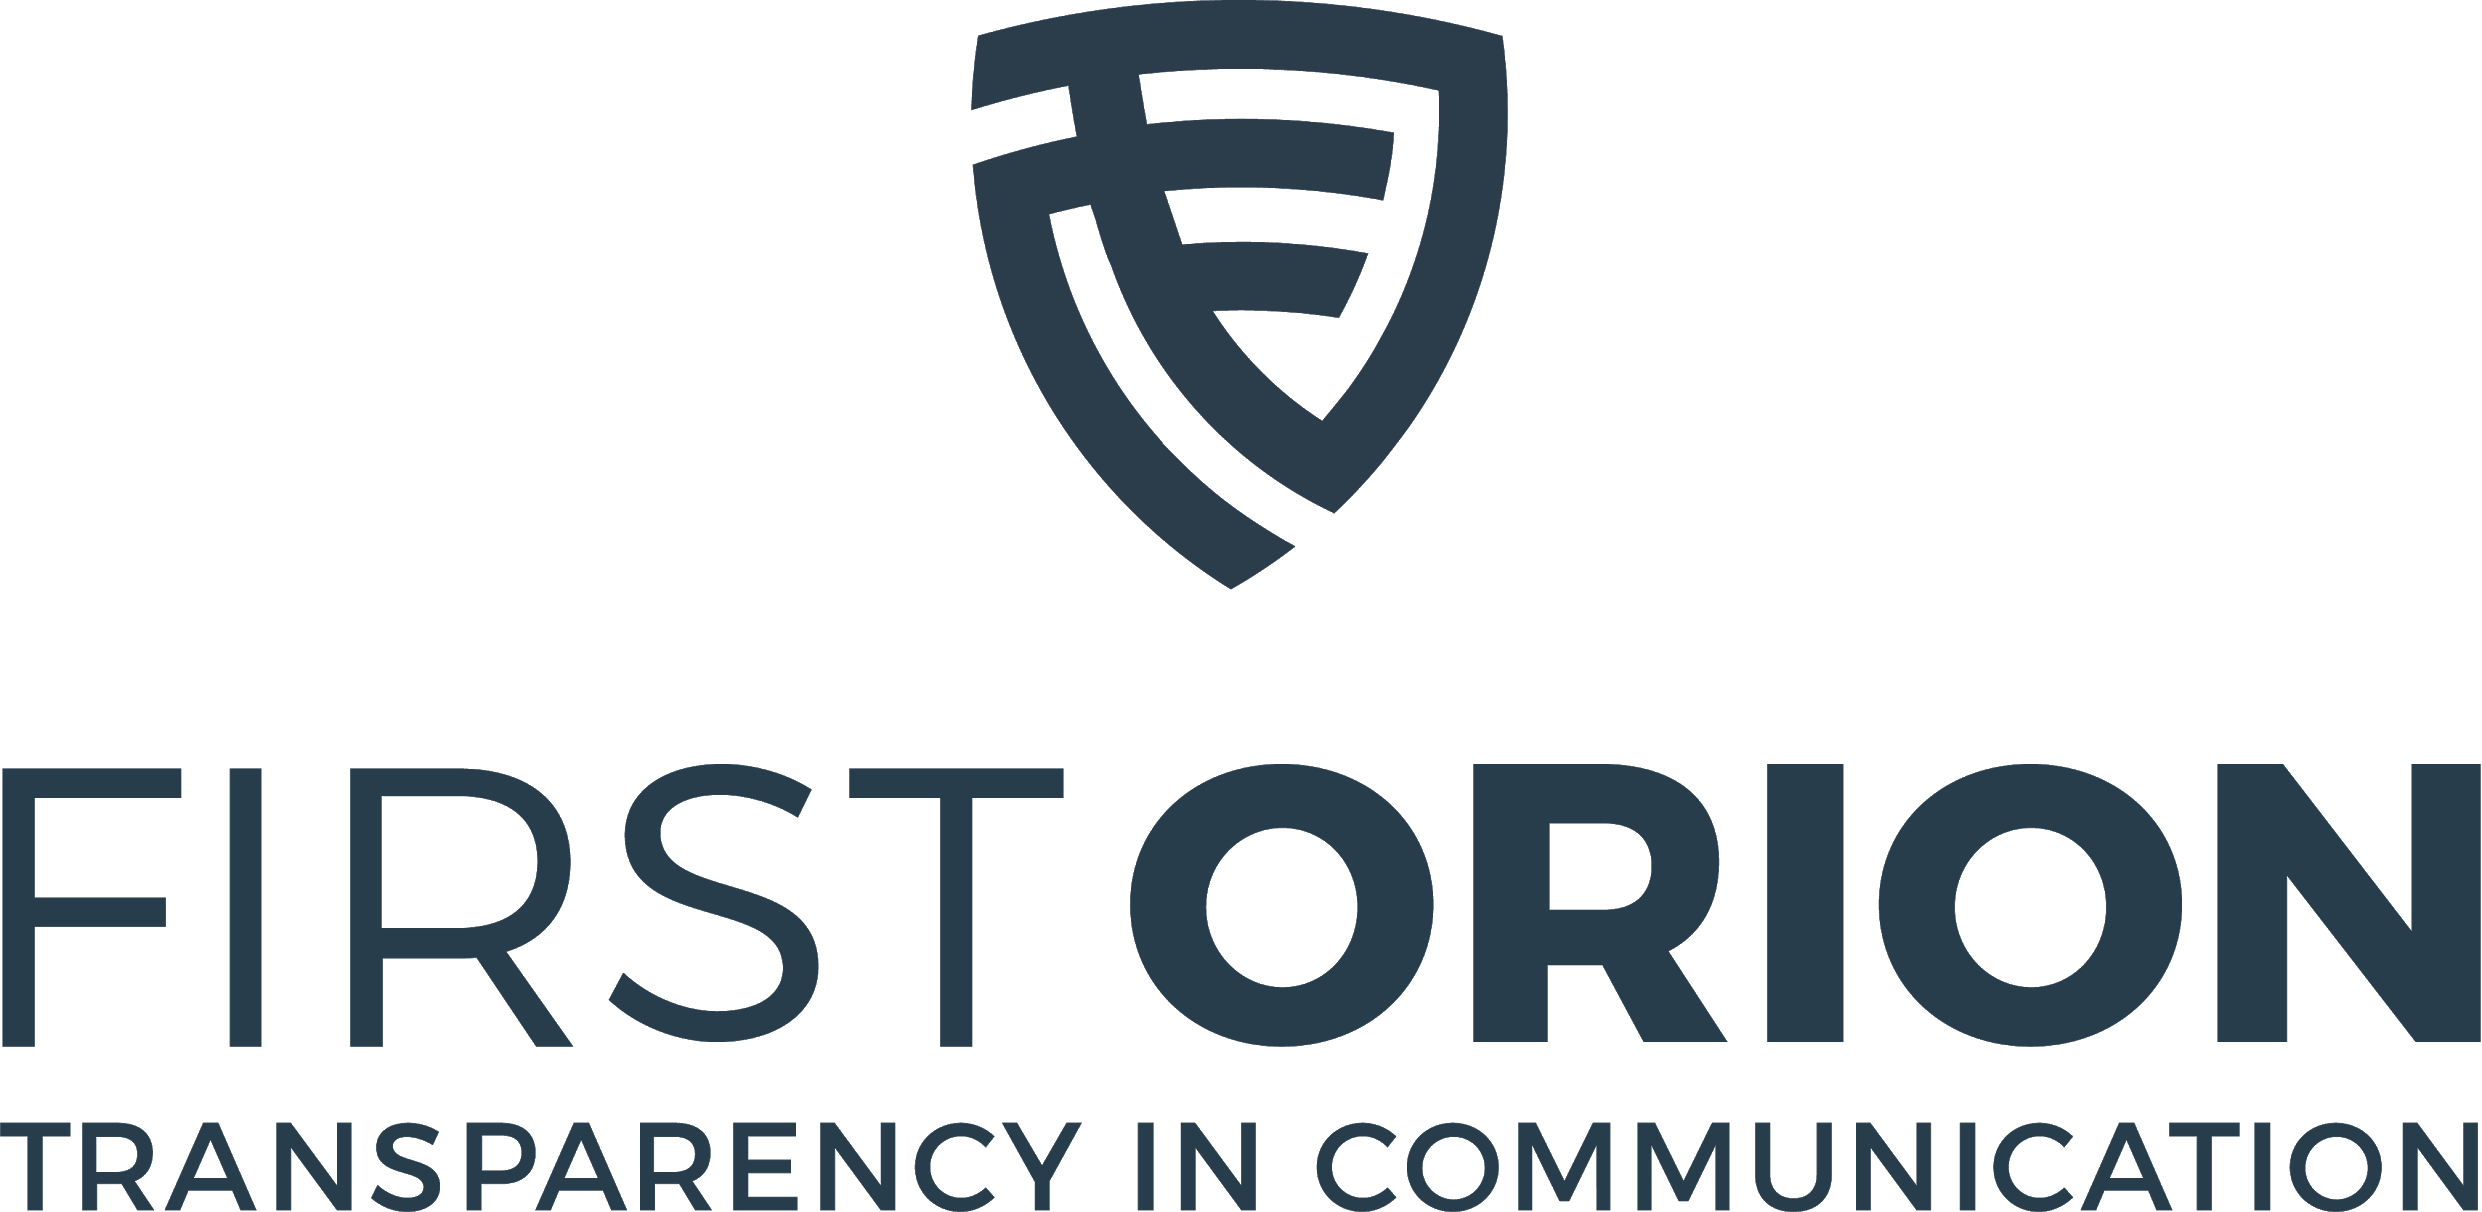 First Orion Logo